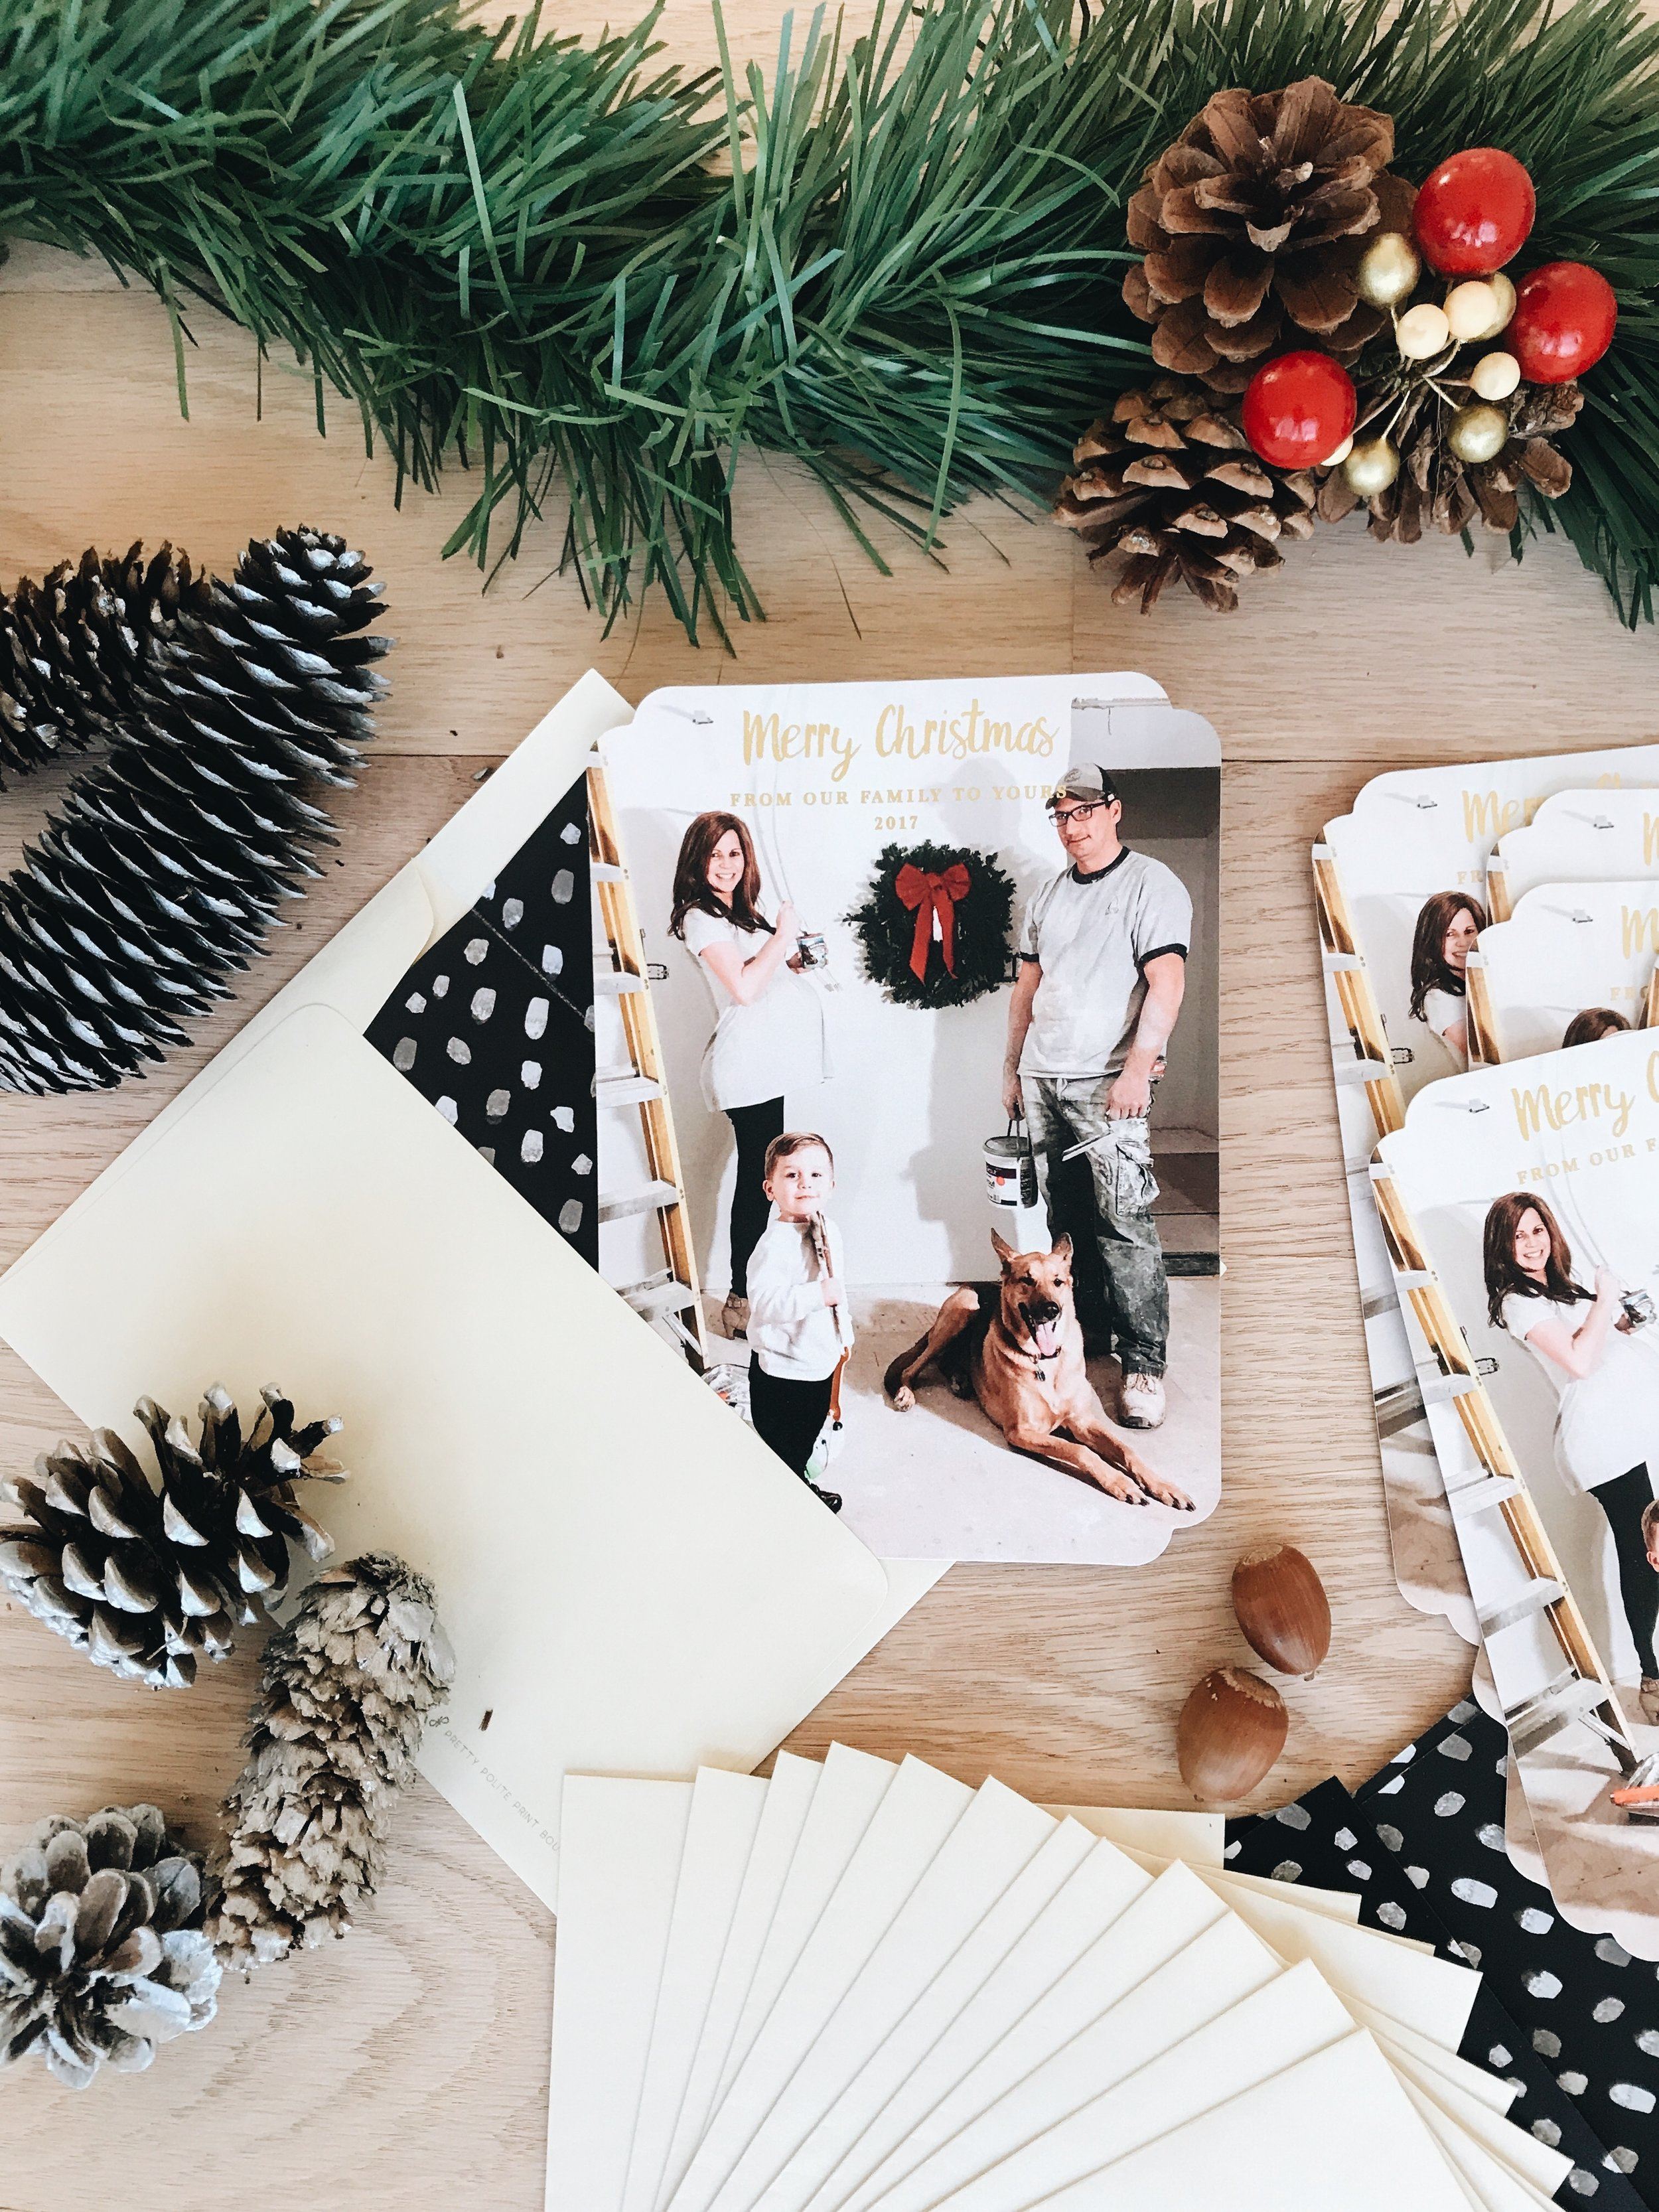 How To Create An Amazing Holiday Card Using Pretty Polite Print Boutique. Staging a photo card for the holidays.